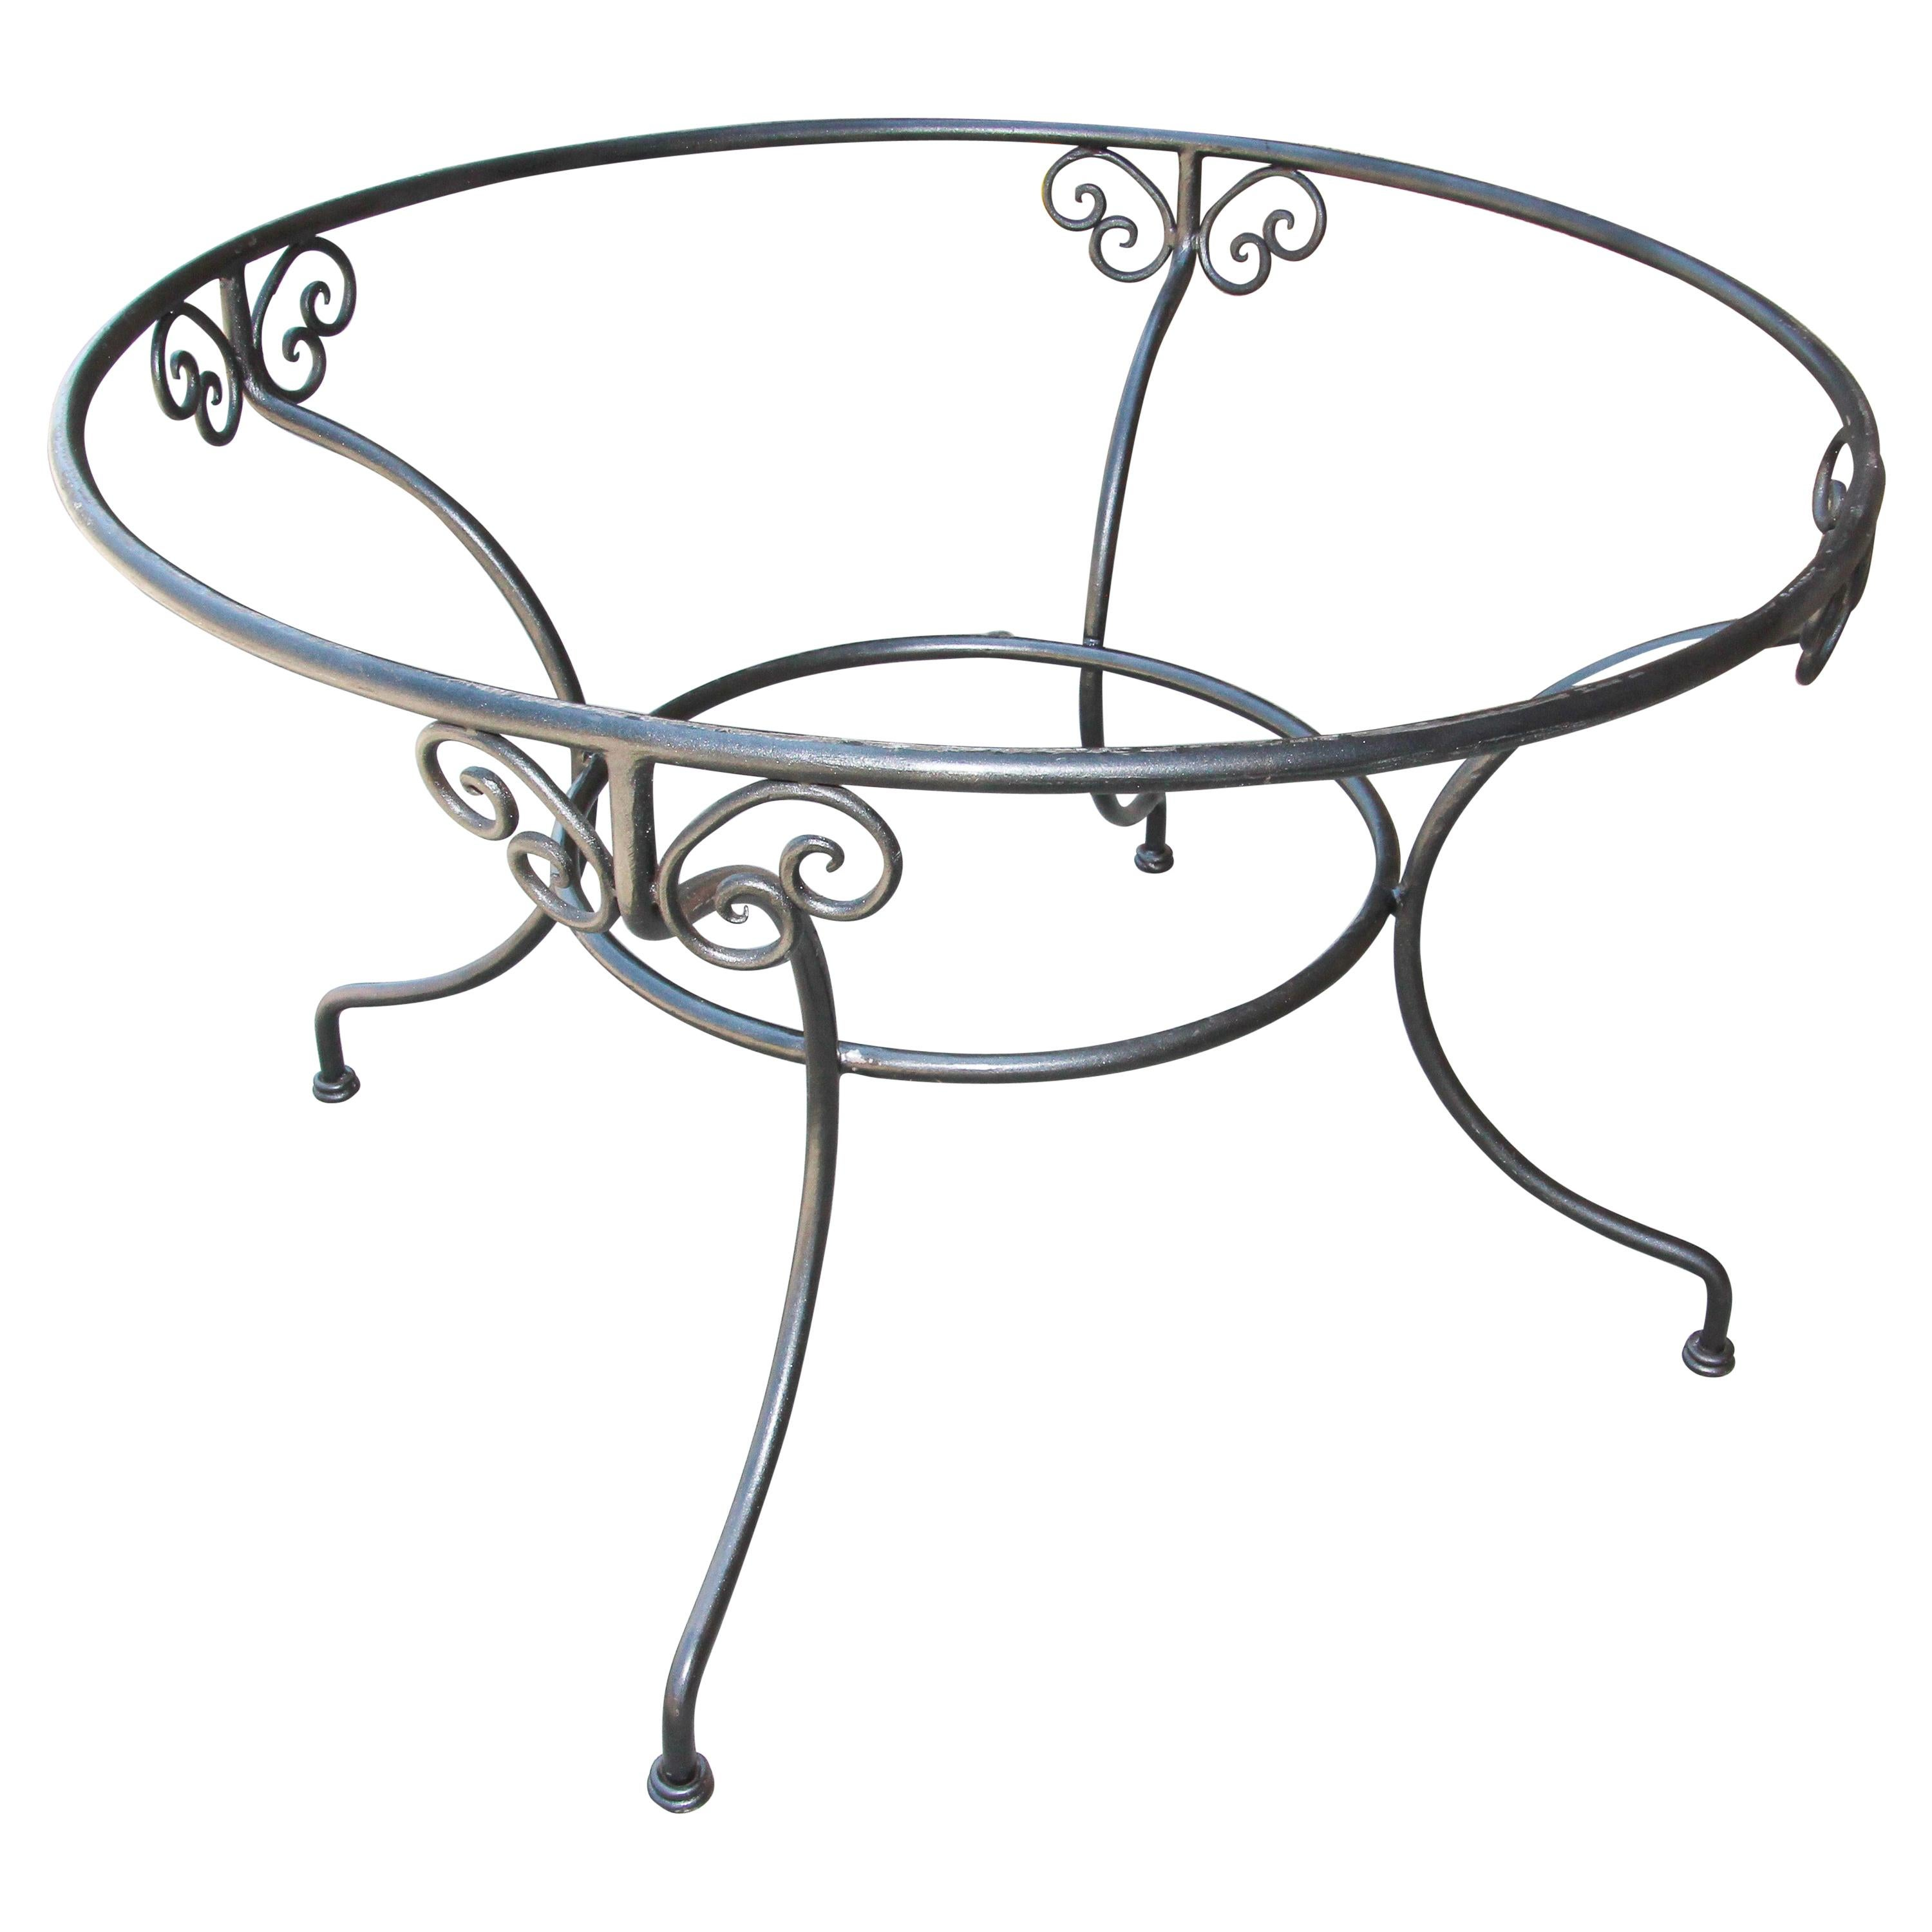 Wrought Iron Dining Table Base Indoor or Outdoor